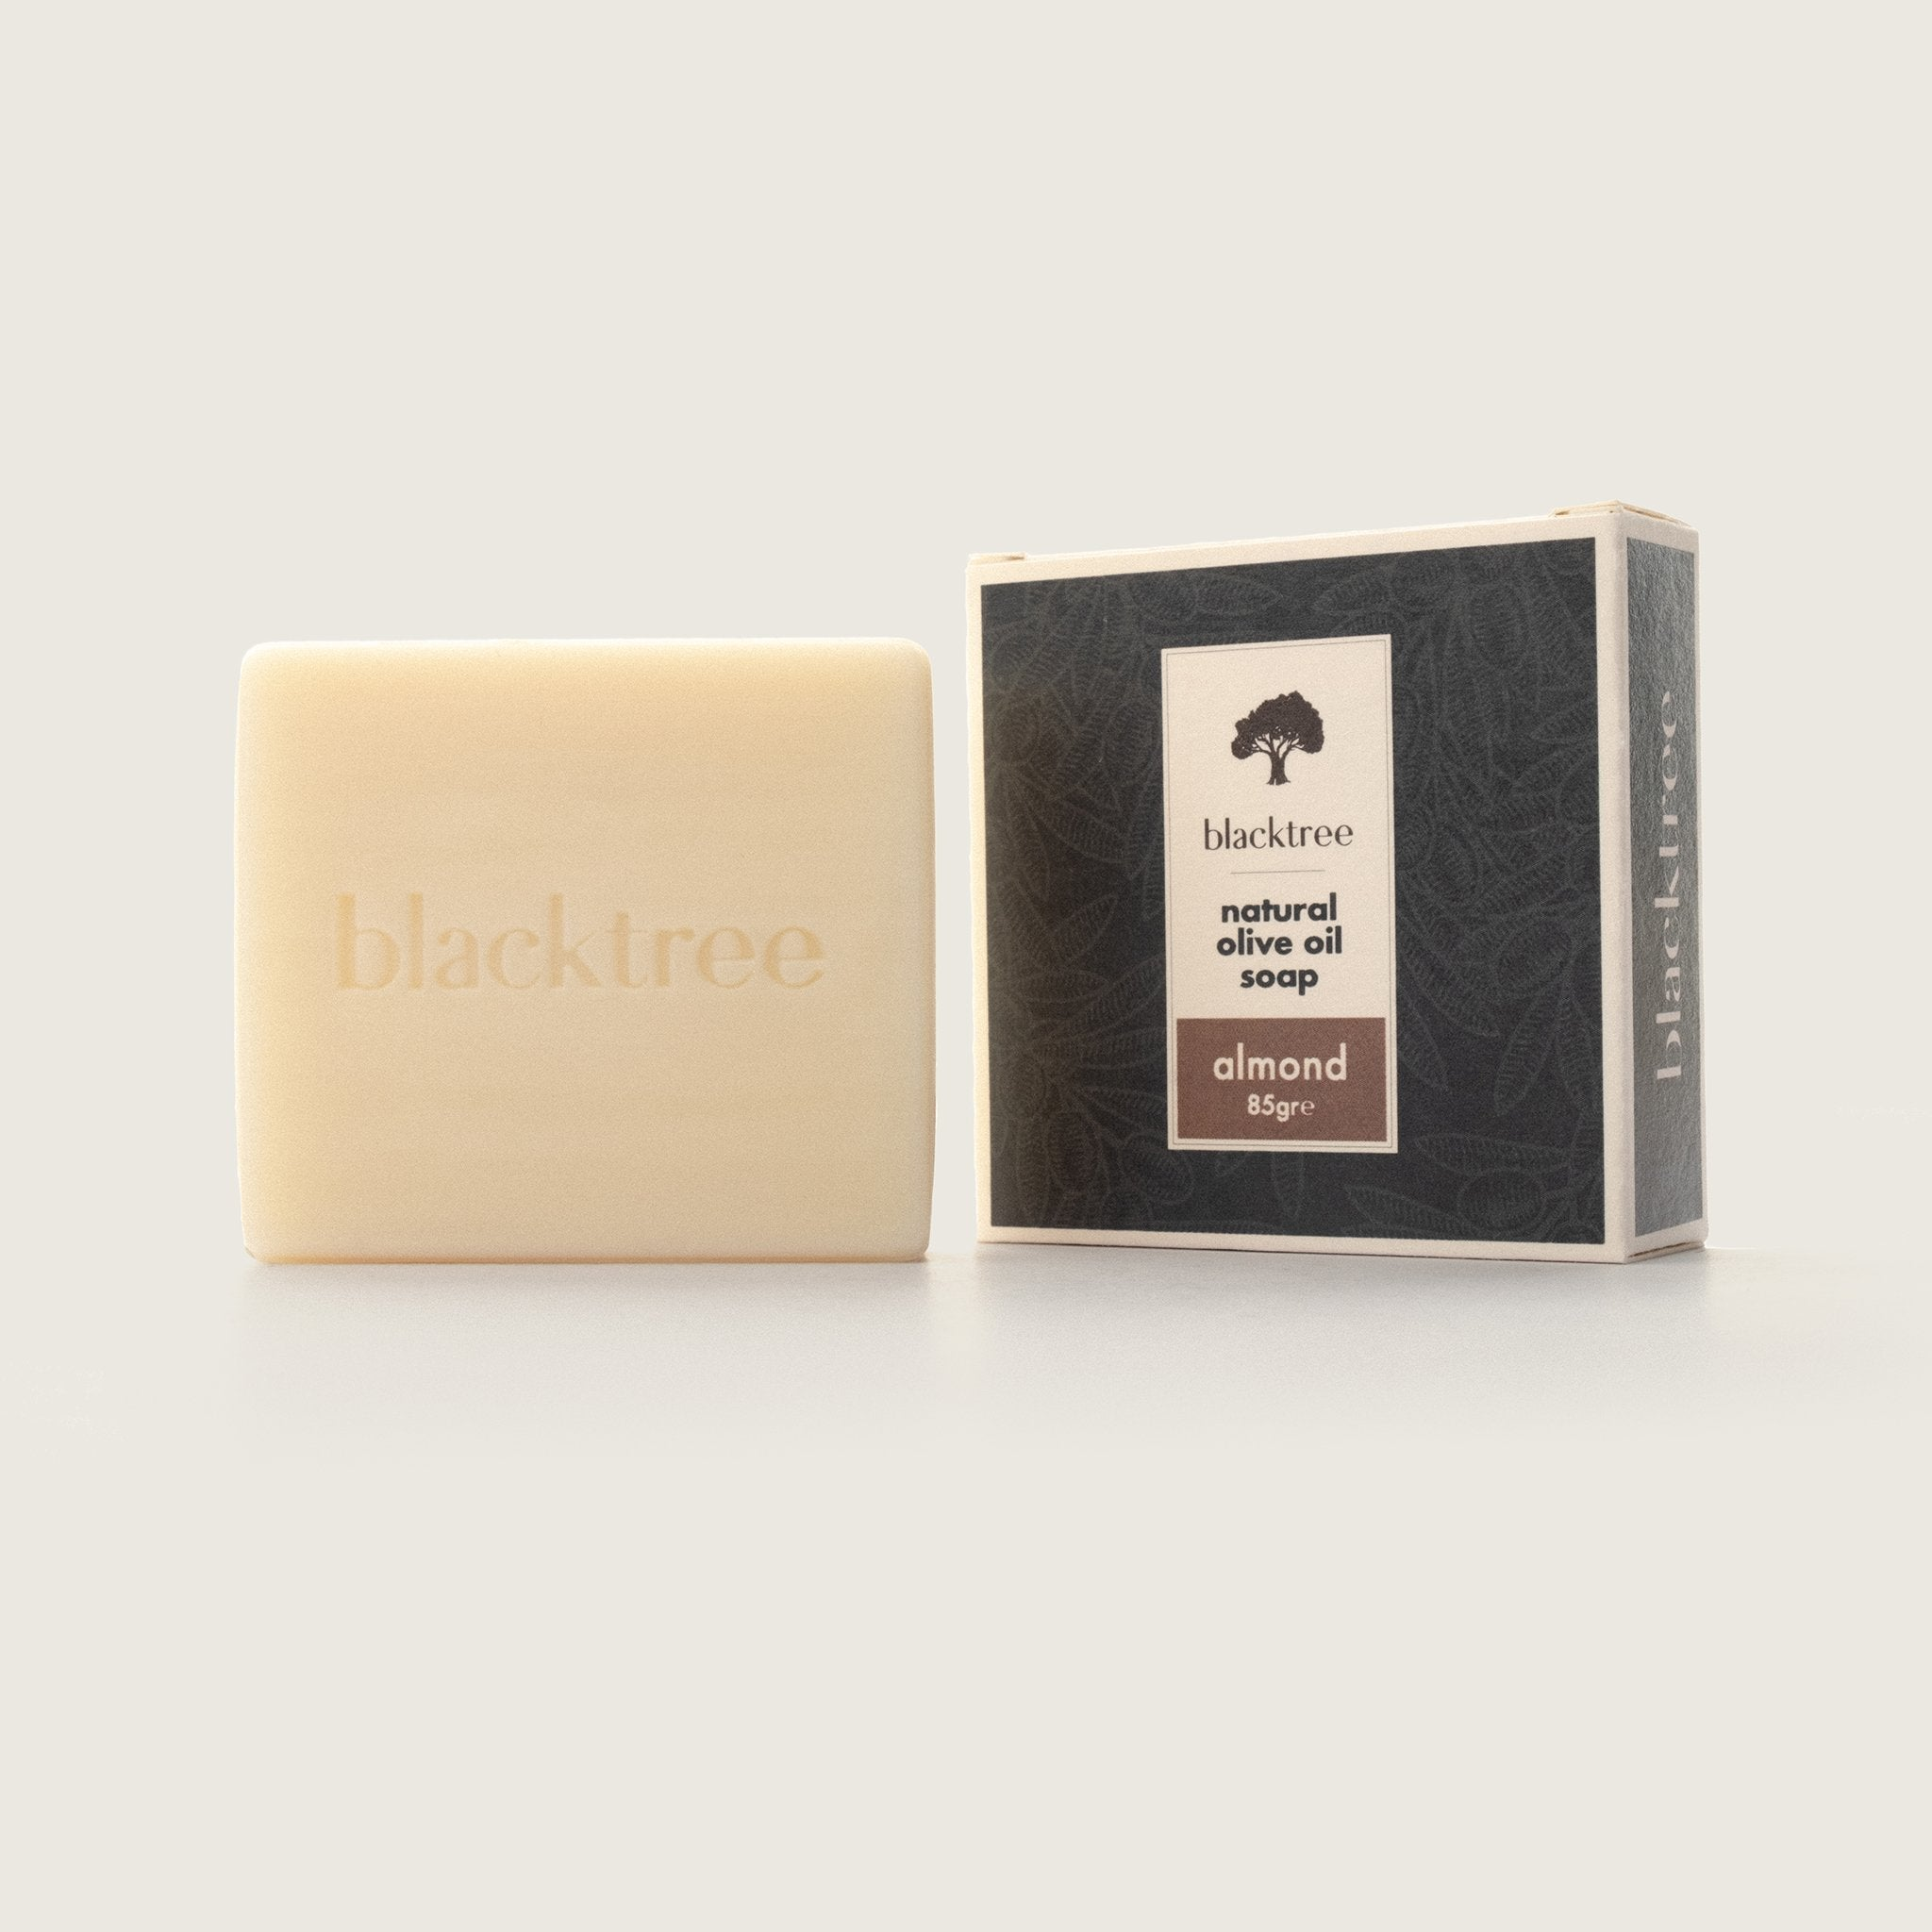 Natural Olive Oil Soap - Almond - 85gr (Bar Soap) - Blacktree Naturals